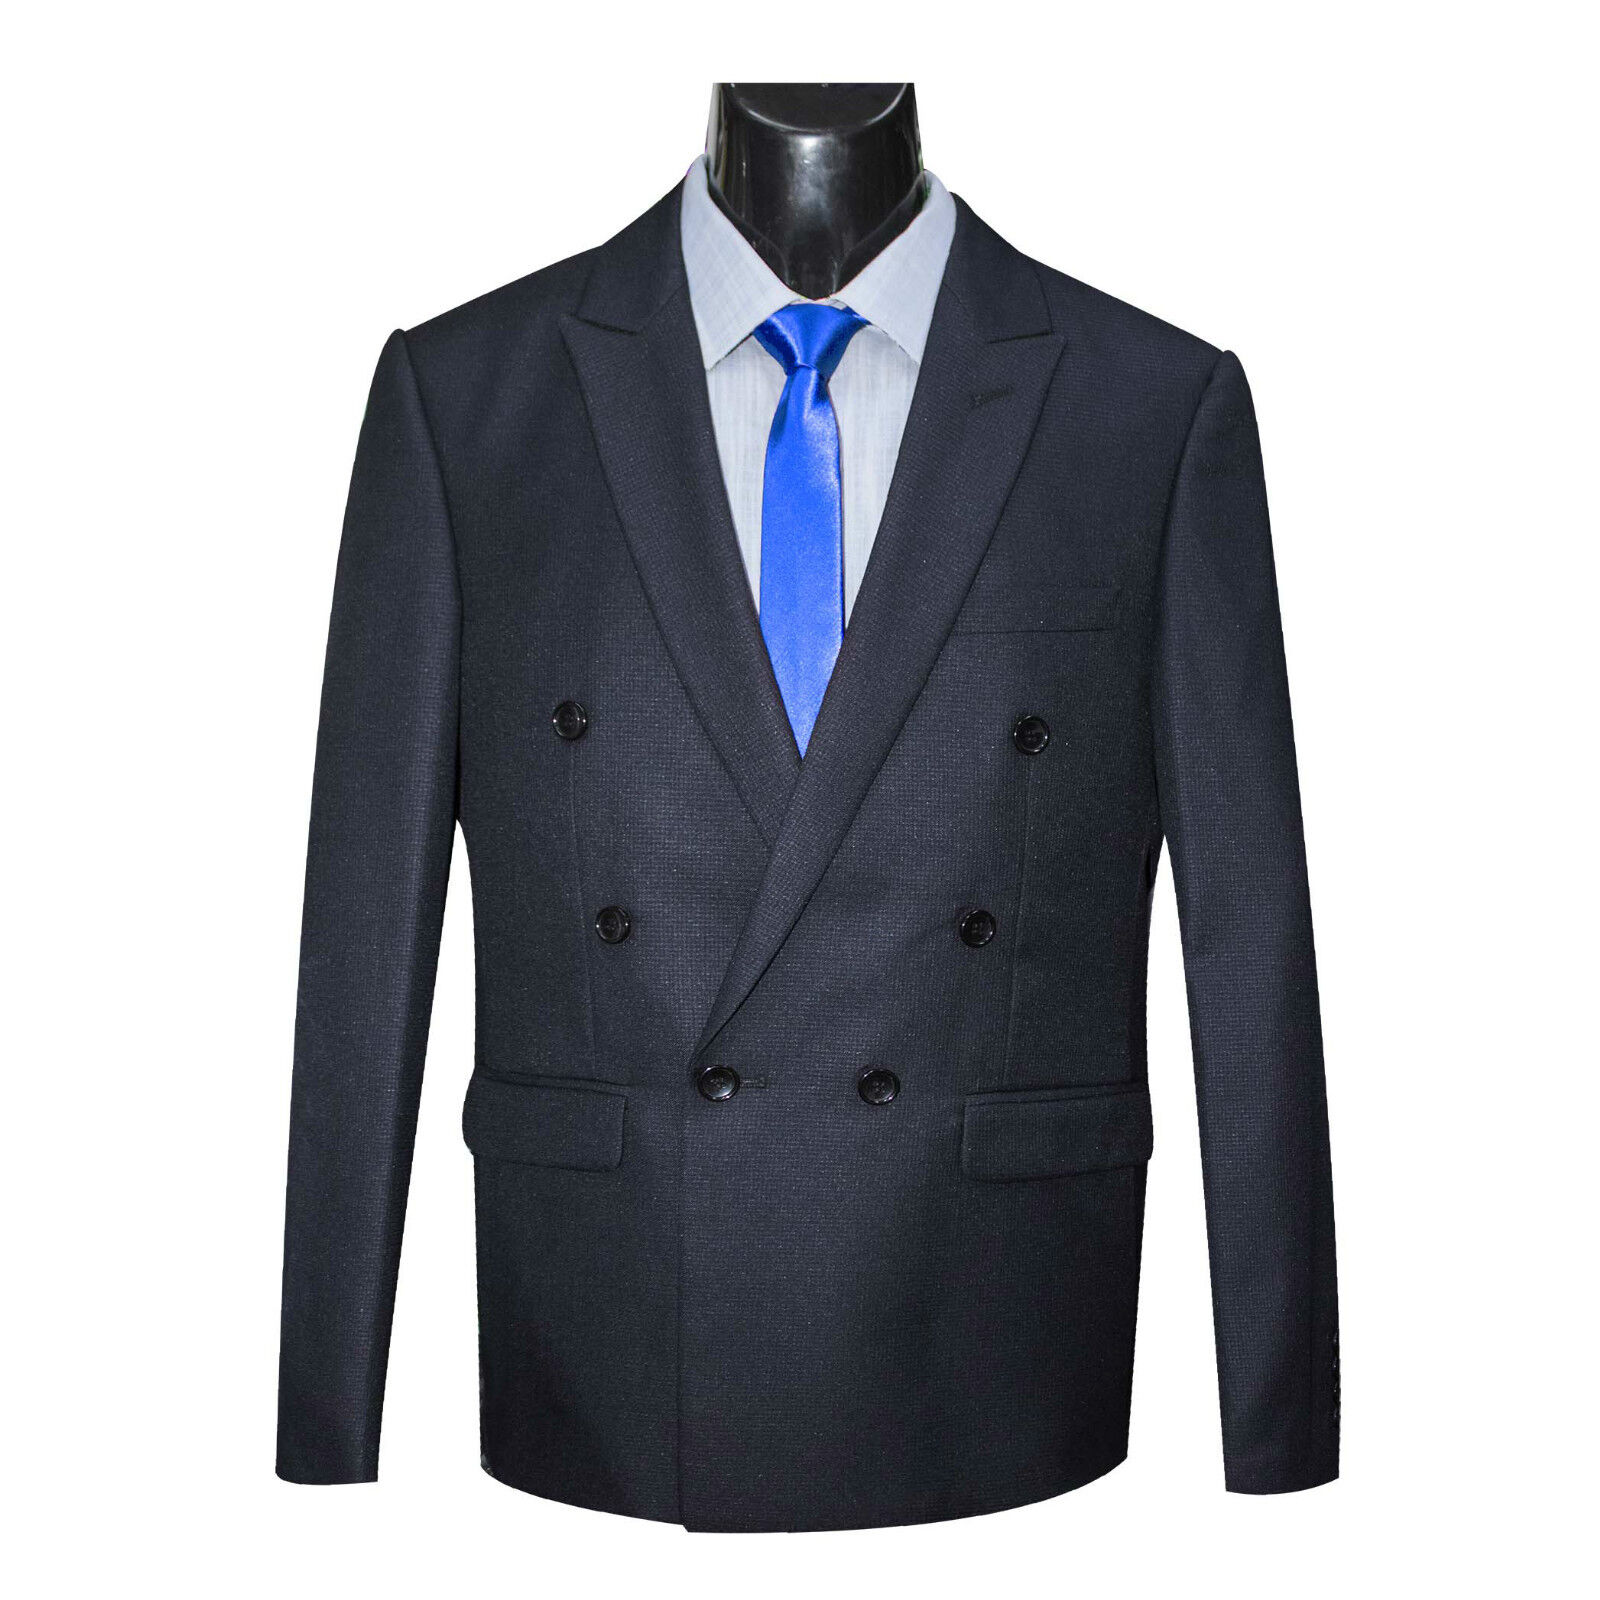 NEW ARRIVAL - herren NAVY DOUBLE BREASTED SLIM FIT SUIT (6x1)